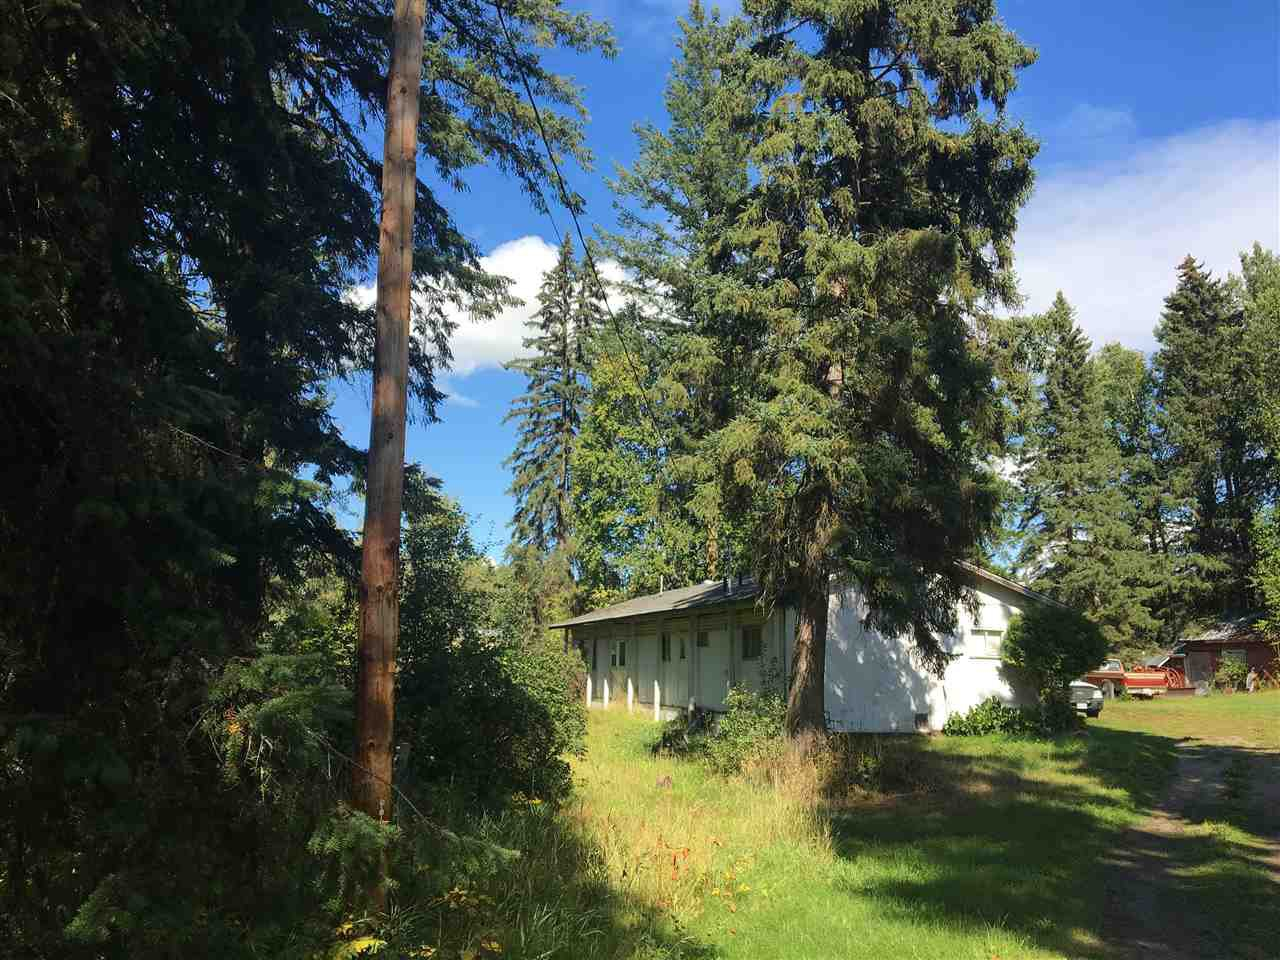 Photo 3: Photos: 4257 WHITECOTTON Road in Quesnel: Quesnel Rural - South Manufactured Home for sale (Quesnel (Zone 28))  : MLS®# R2479677